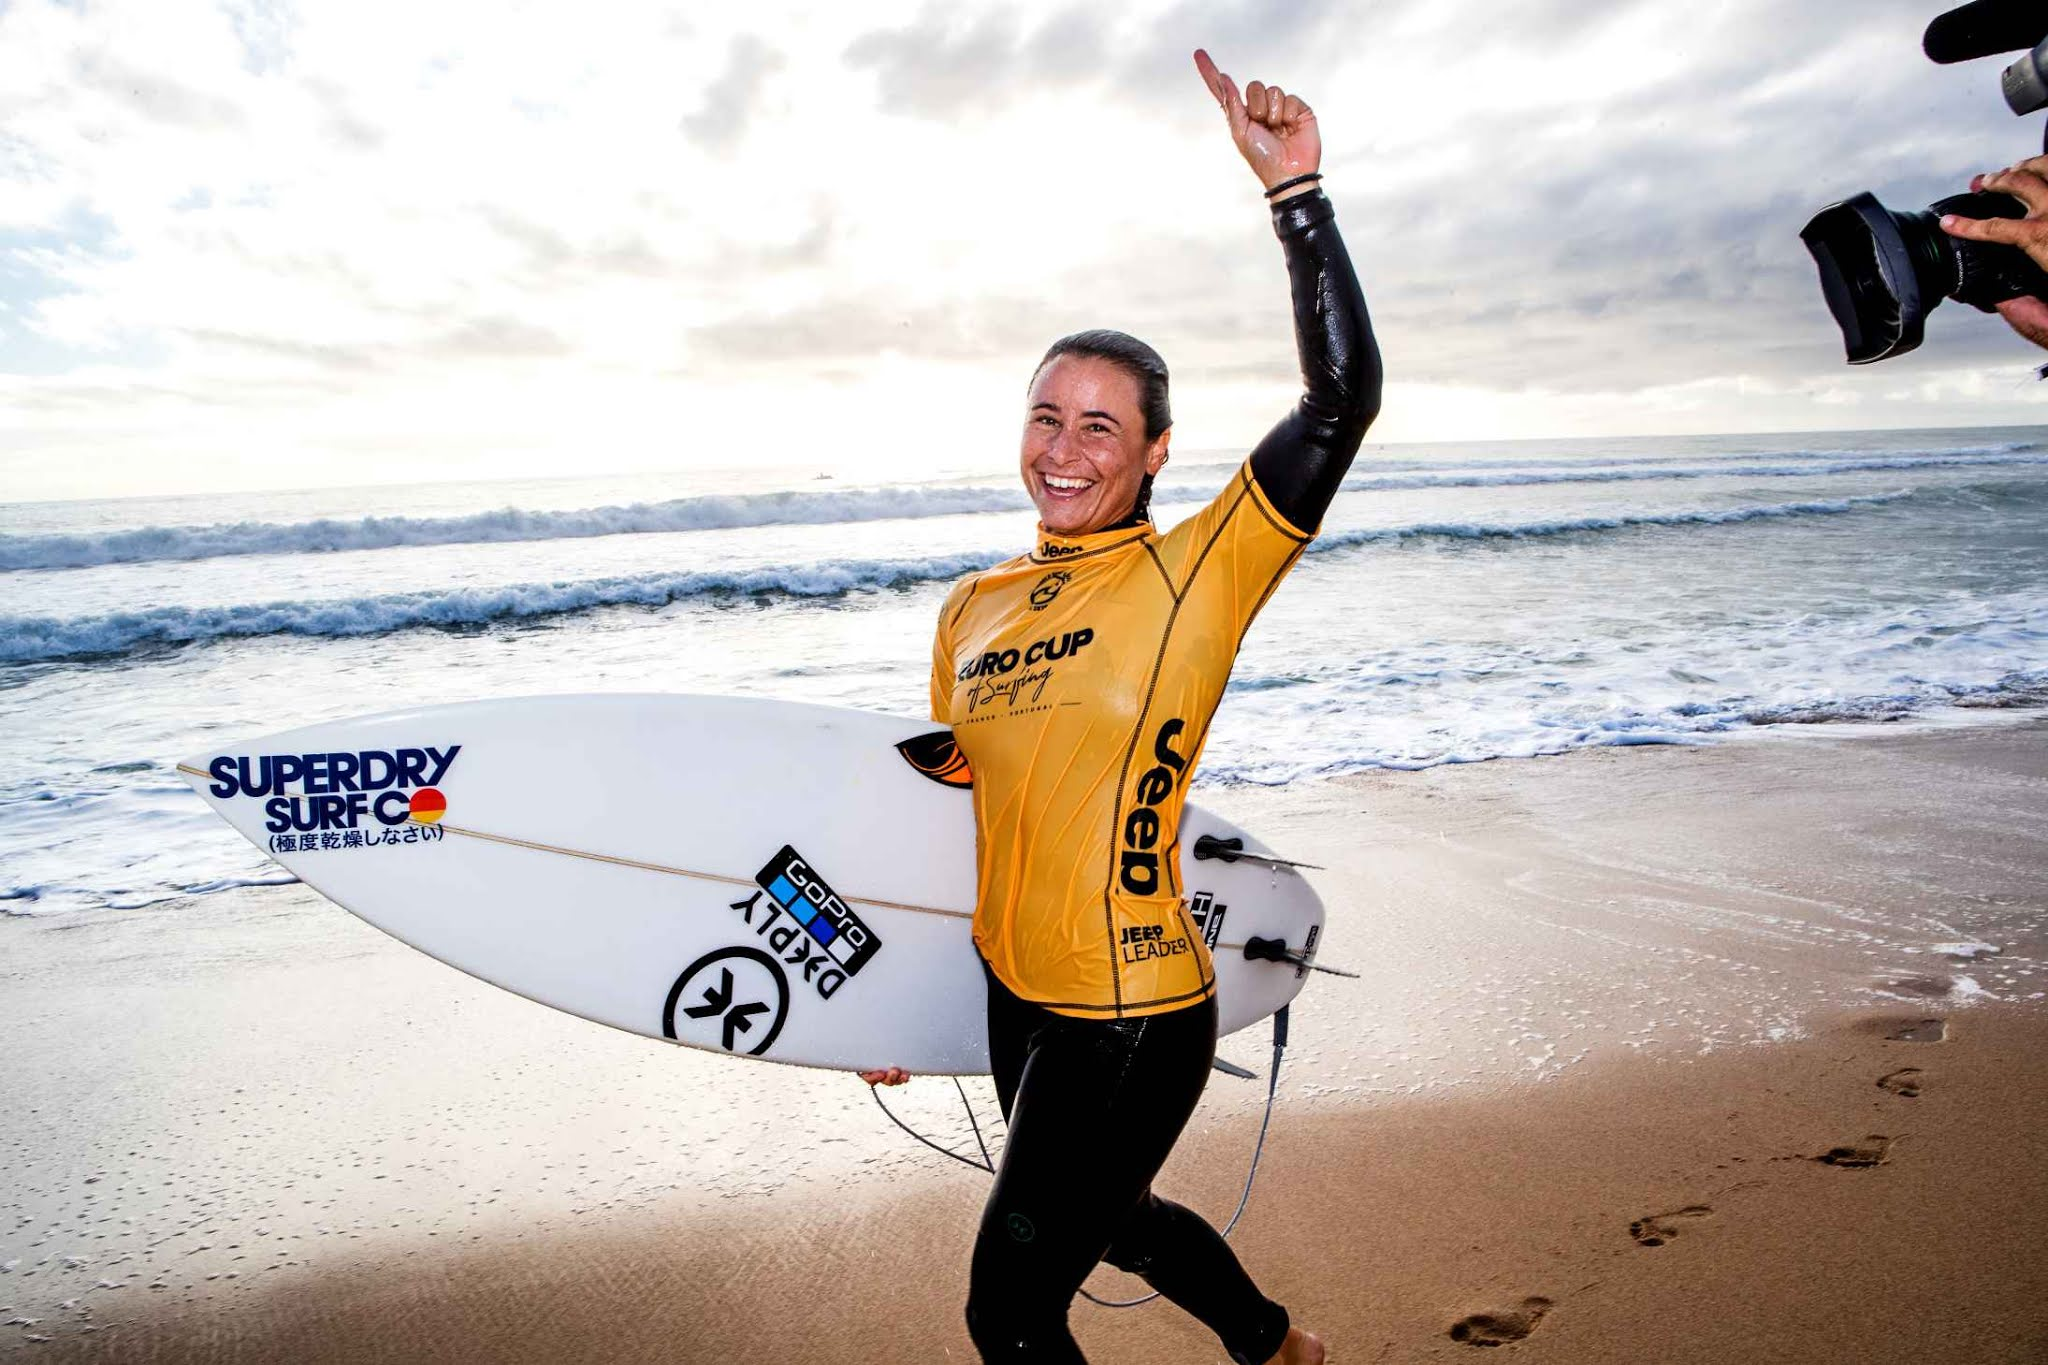 portugal wsl meo surf30 defay j7147MeoPortugal20Poullenot